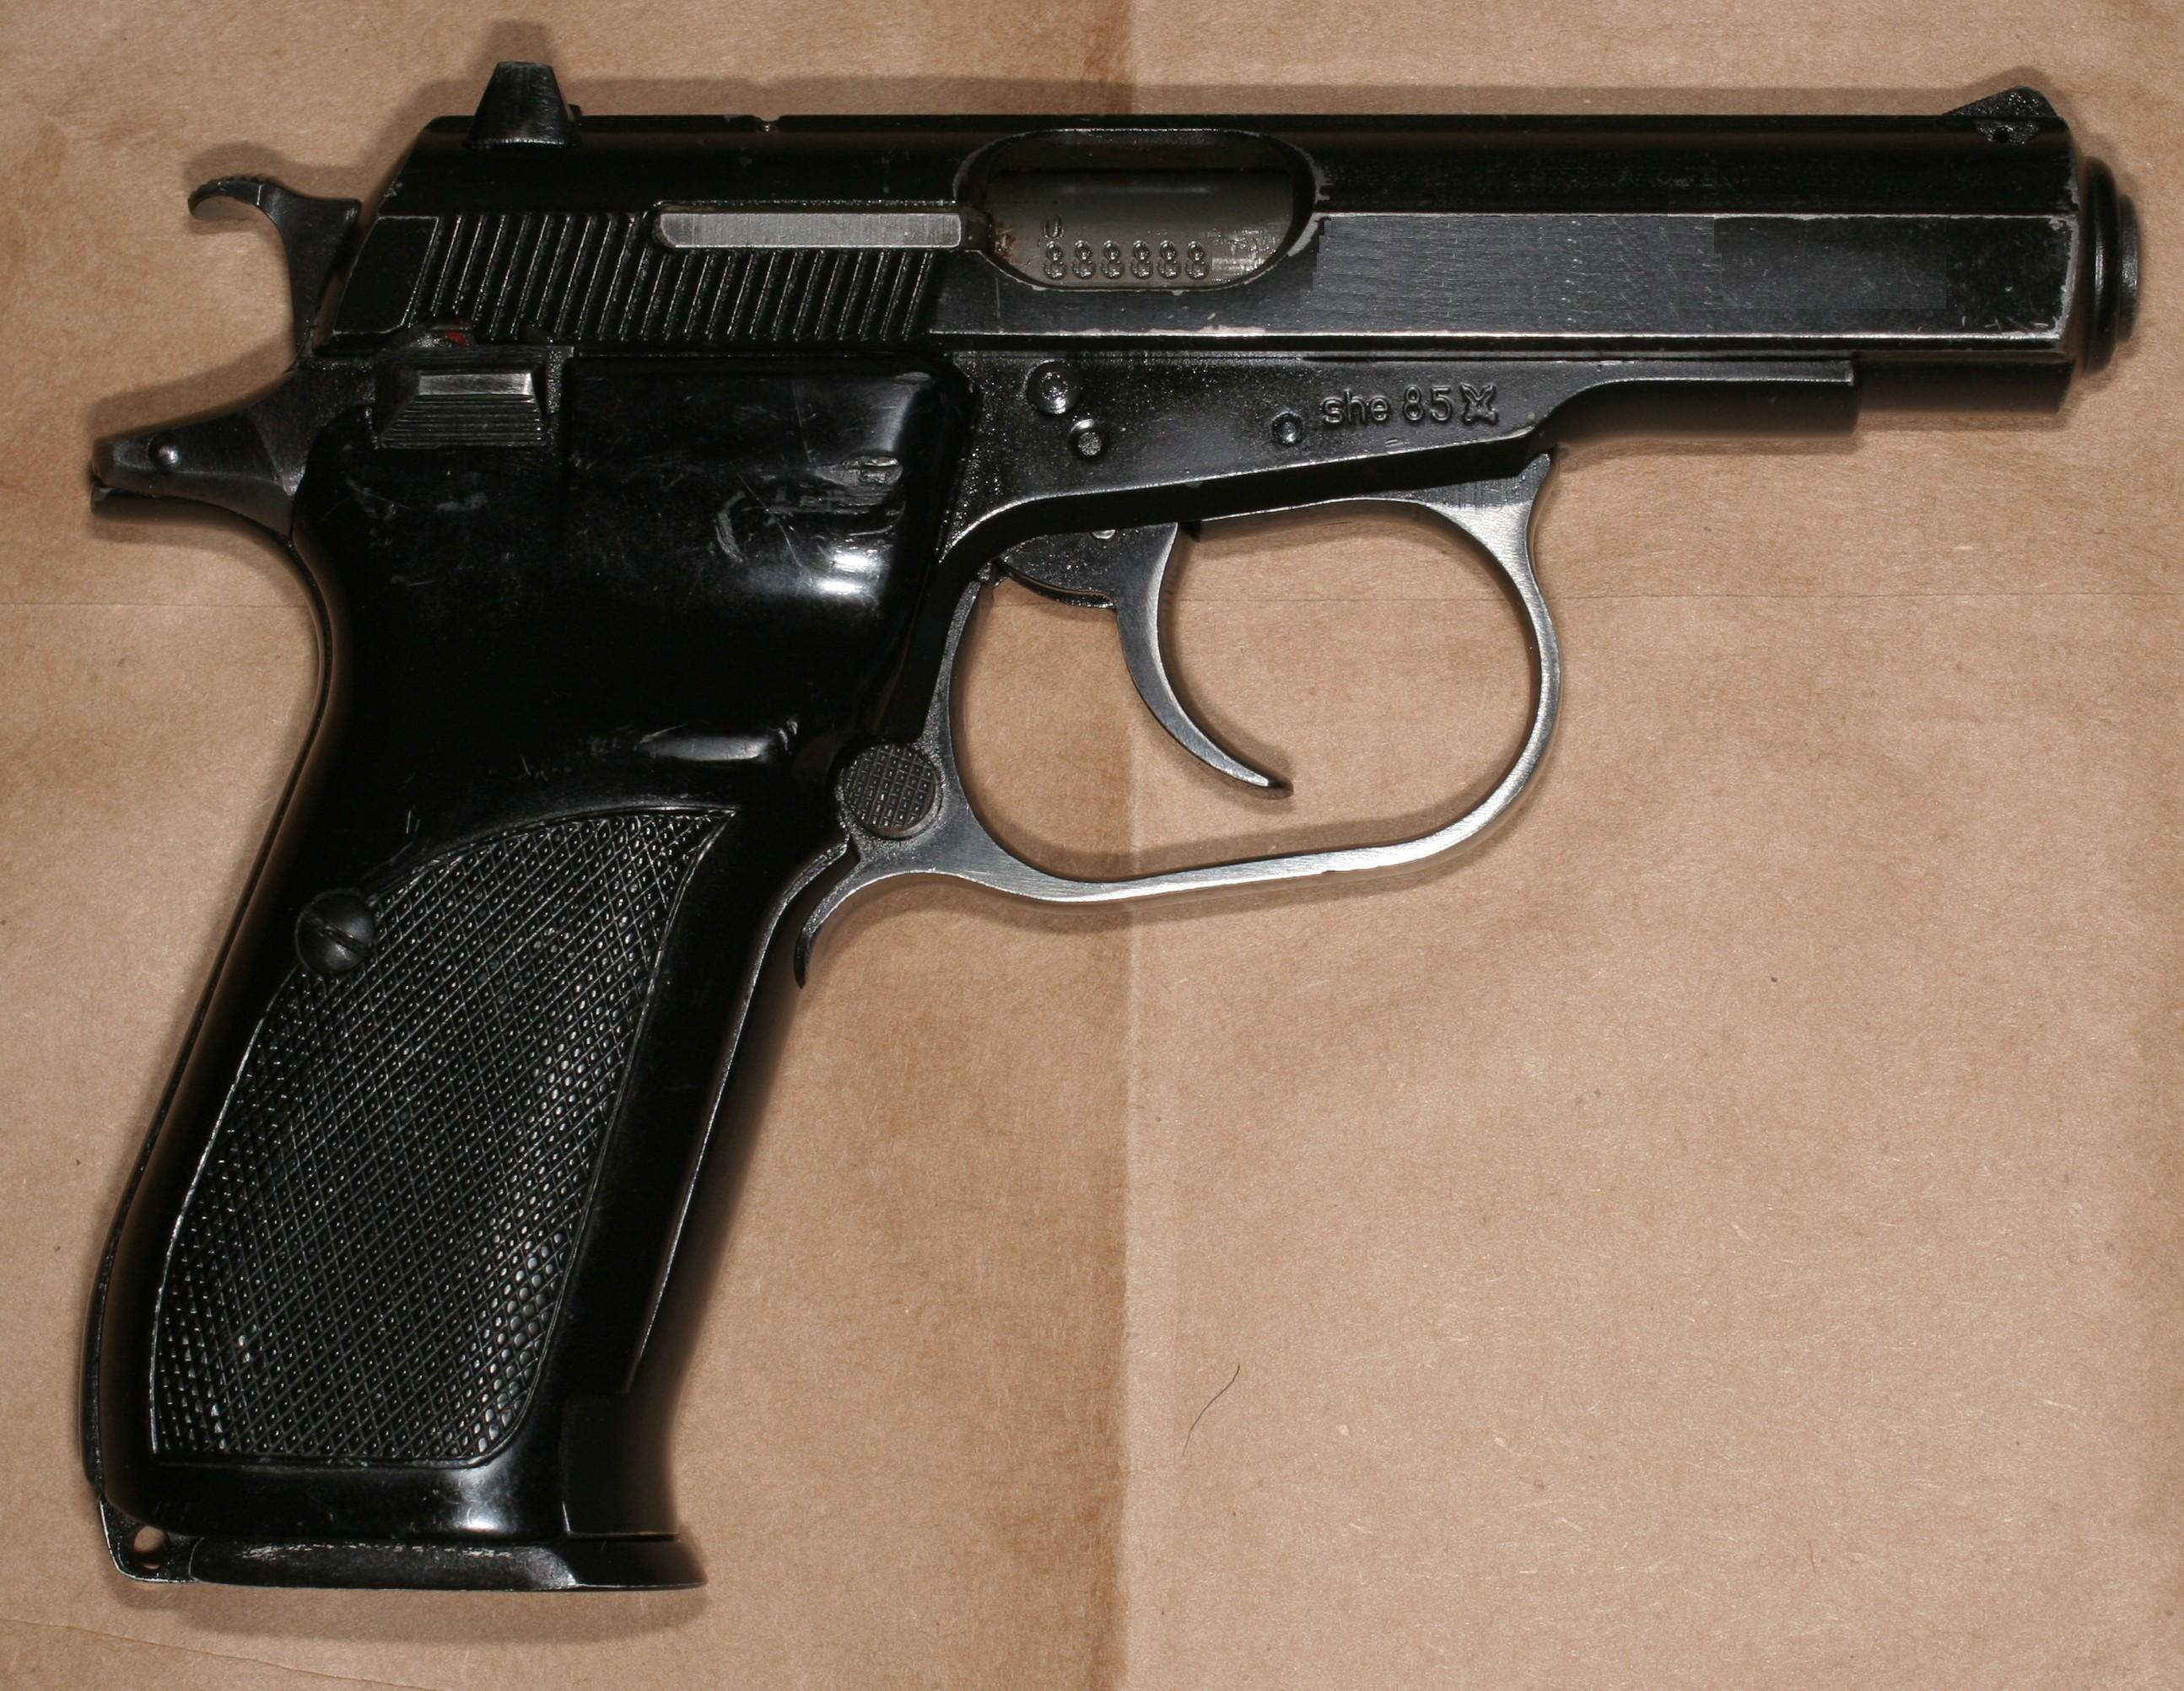 The main parts of the Makarov pistol and their purpose